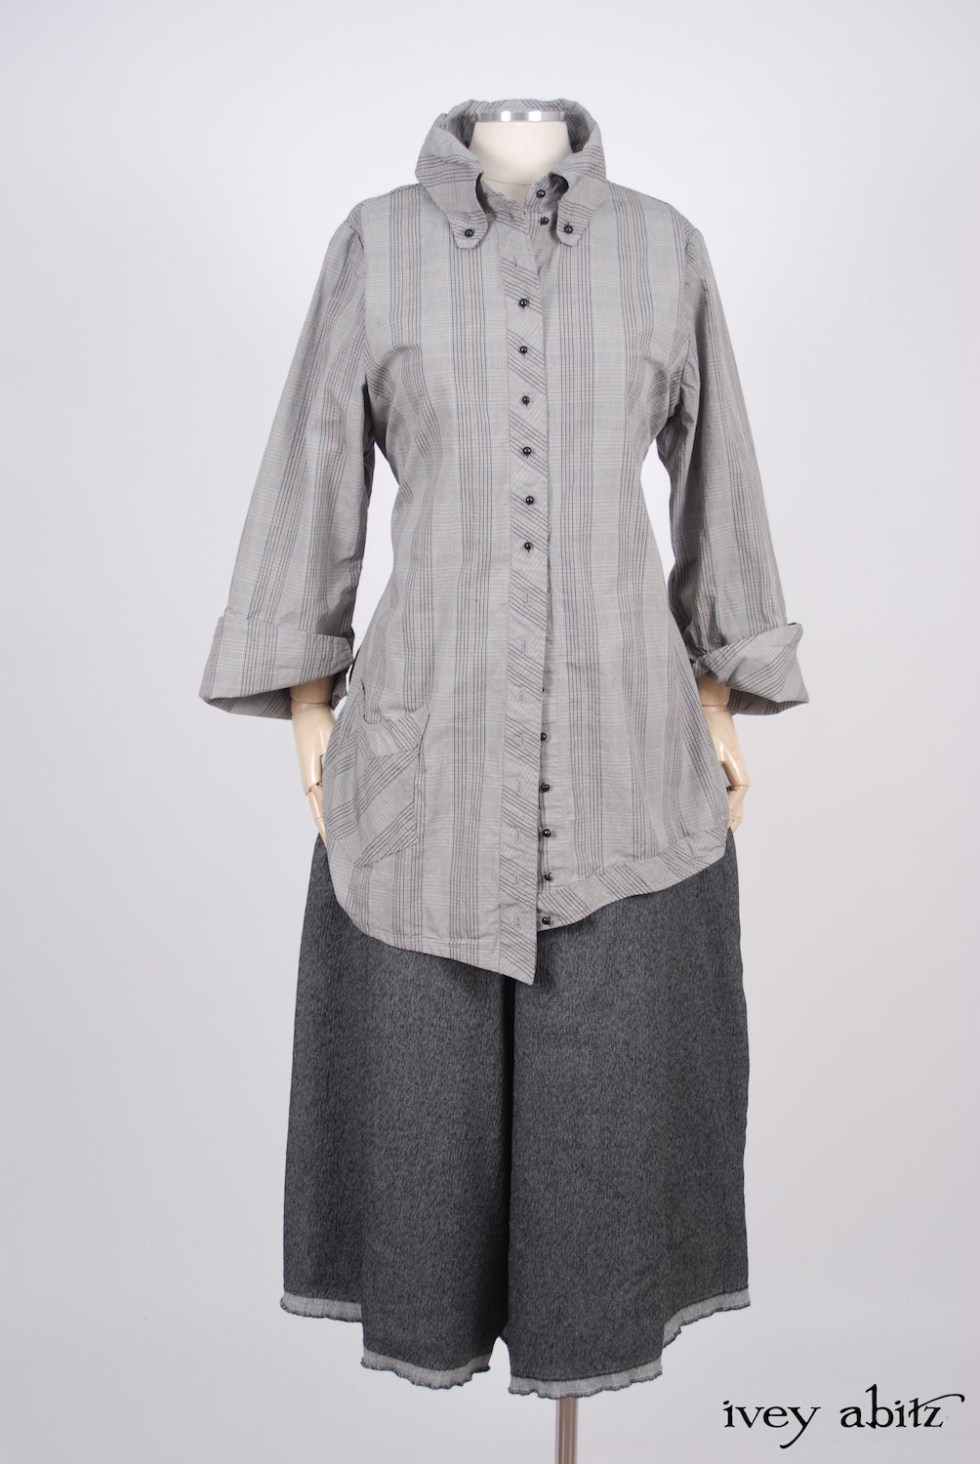 Ivey Abitz - Highlands Shirt in Sparrow Grey Plaid Poplin  - Traipse Trousers in Blackbird Double Layered Weave